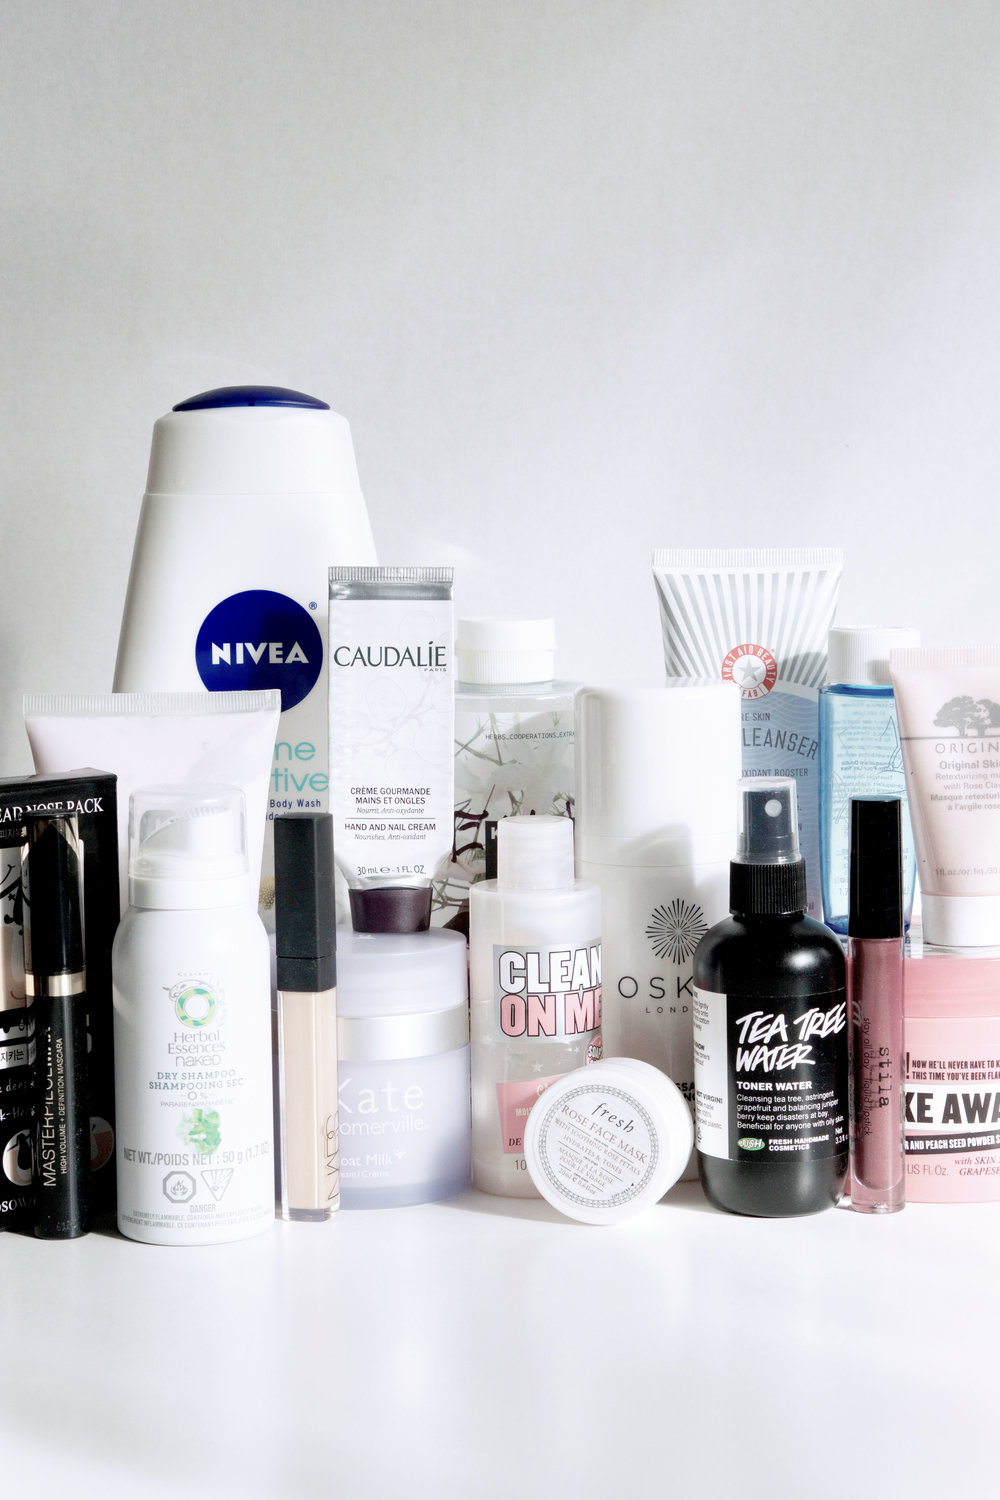 CHY-Empties-Roundup-10